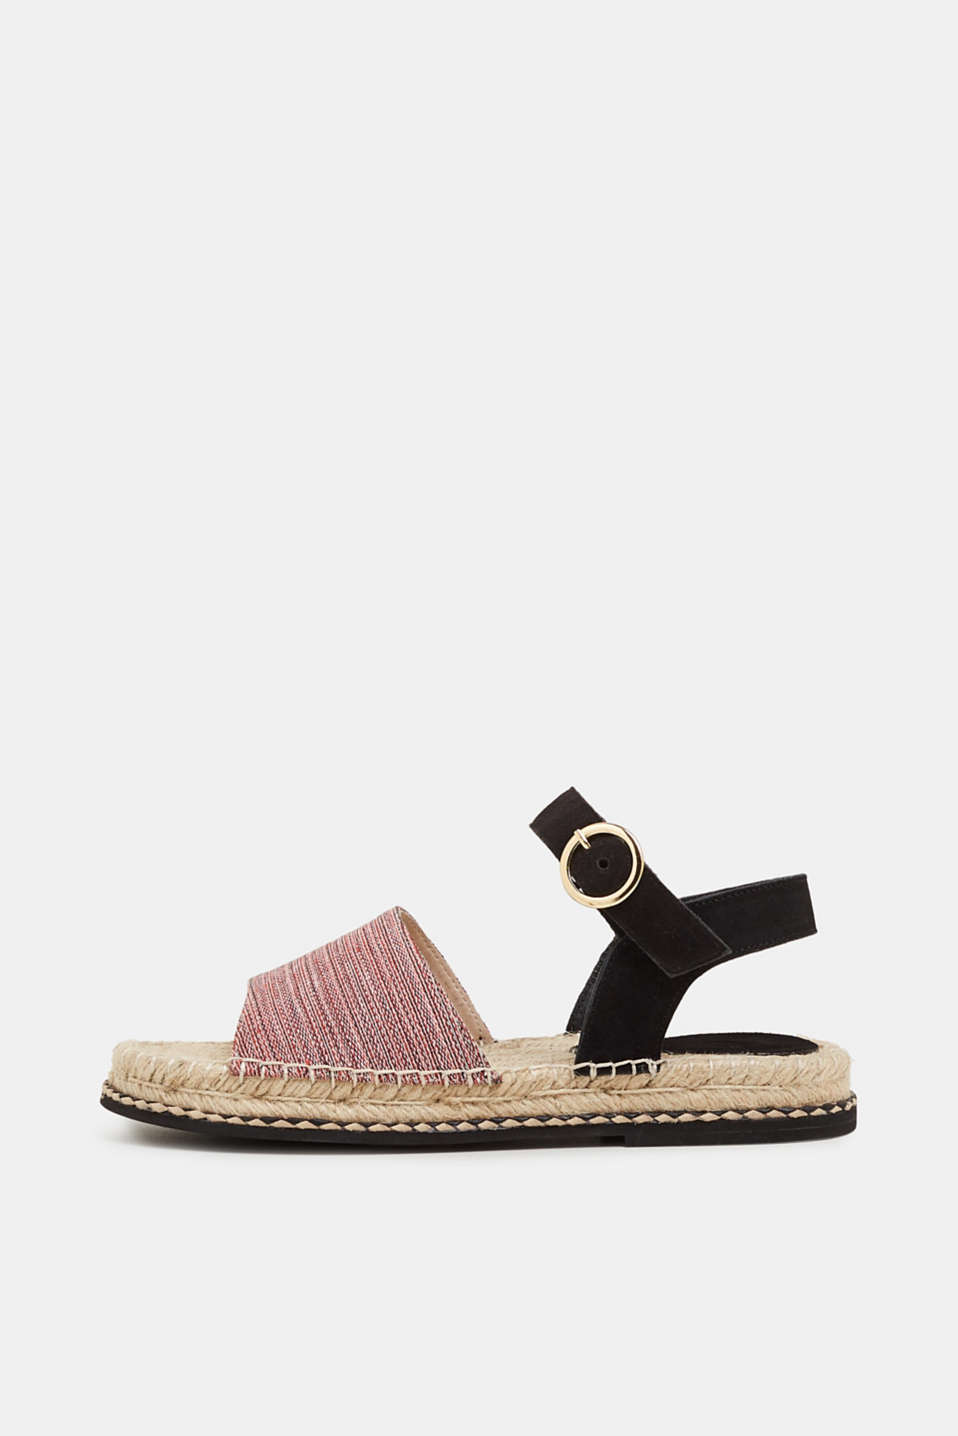 Esprit - Sandals with a bast sole